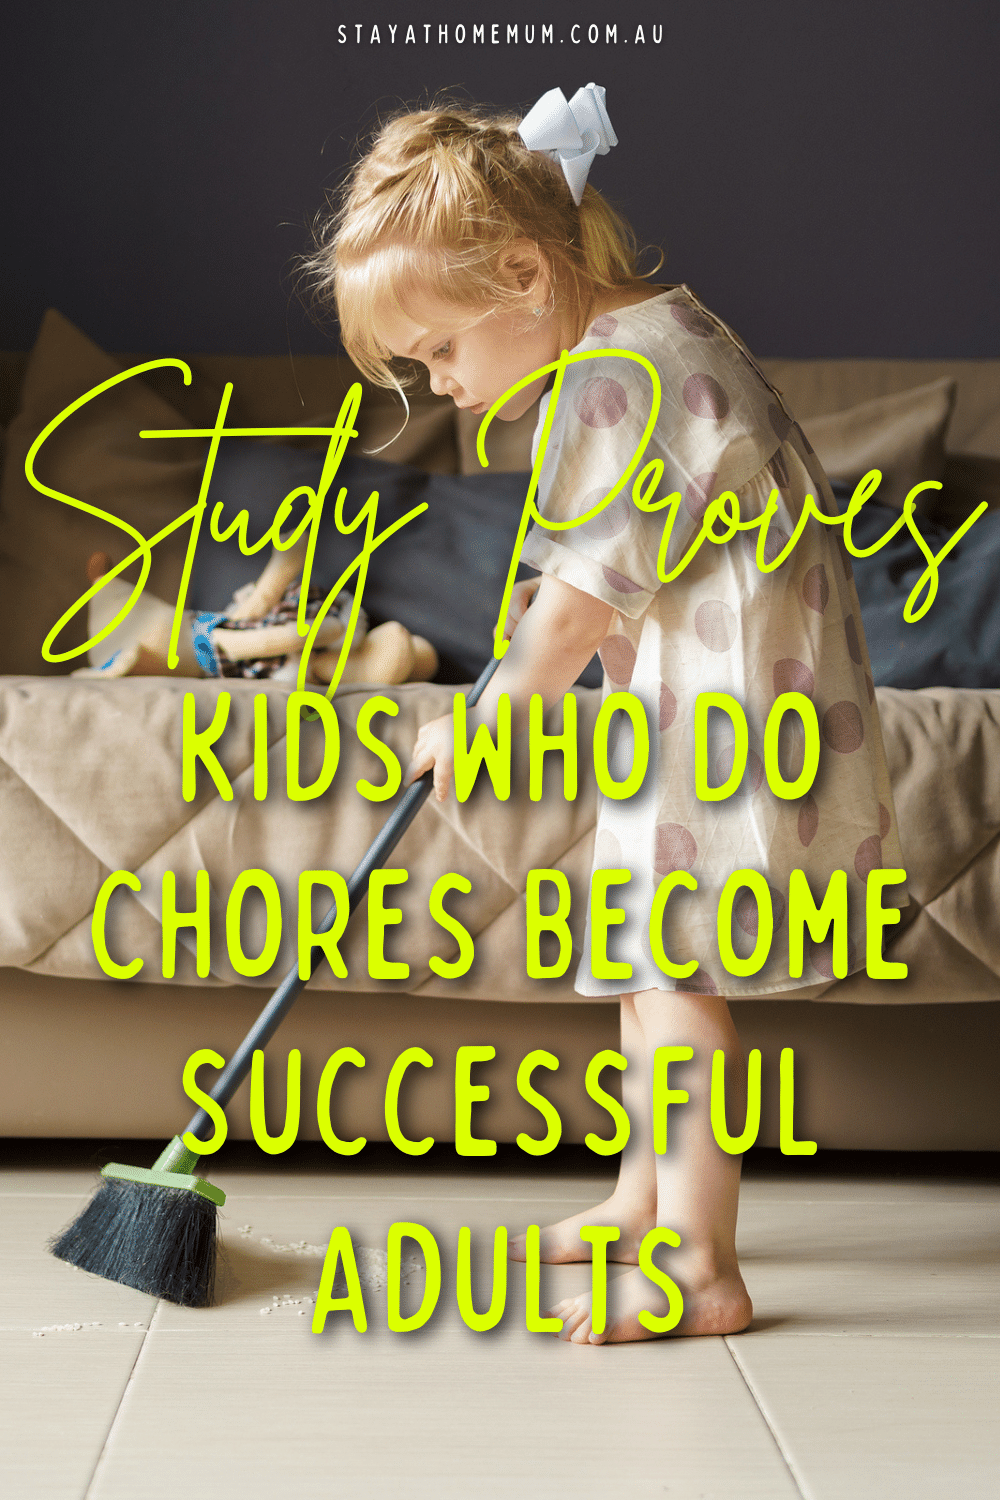 Kids Who Do Chores Become Successful Adults | Stay At Home Mum